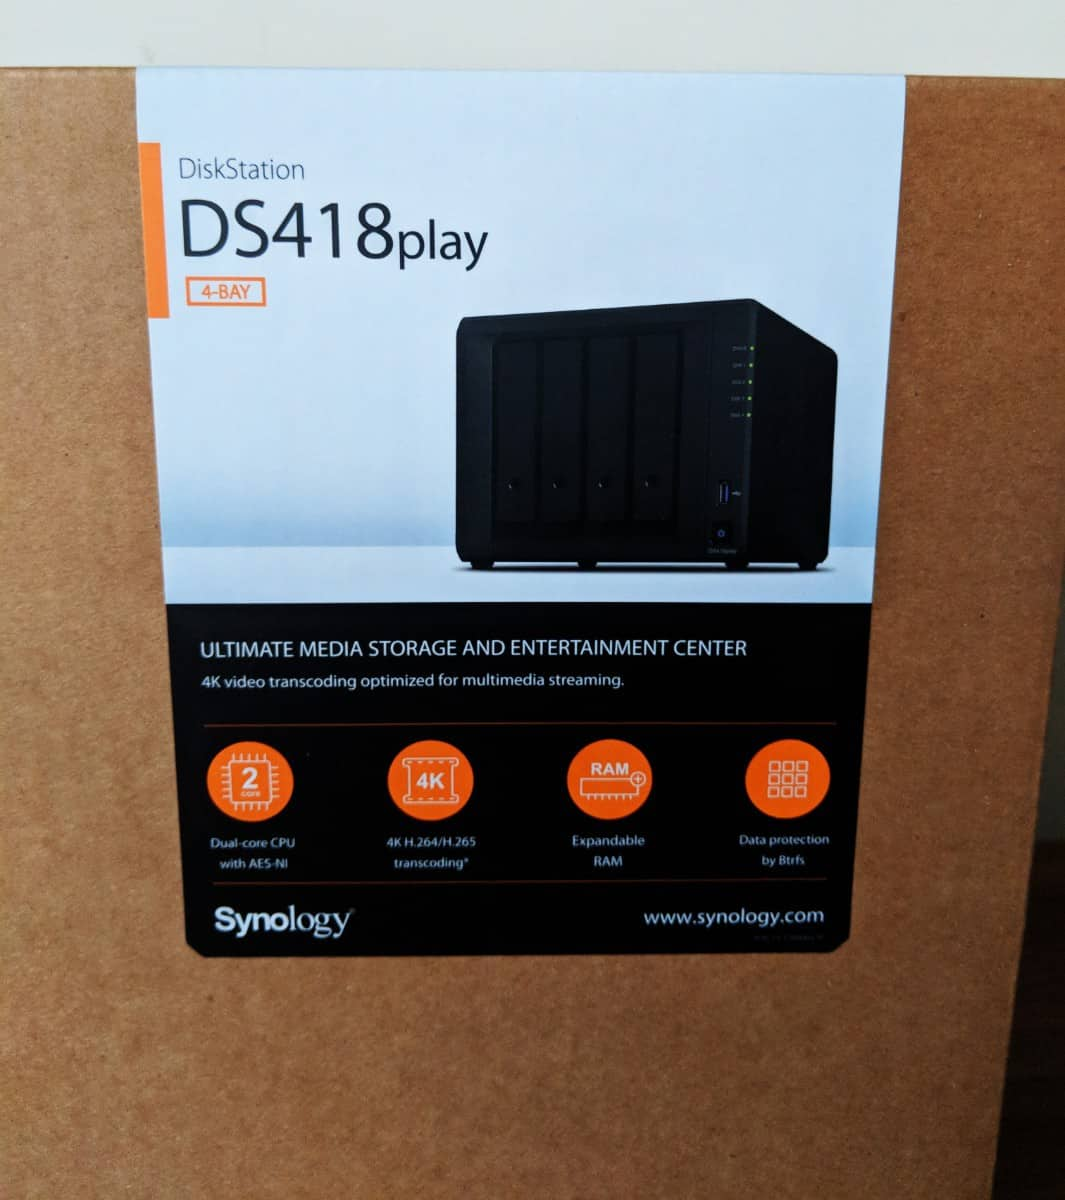 Synology-DS418play-Photos-17 Synology DS418play Review